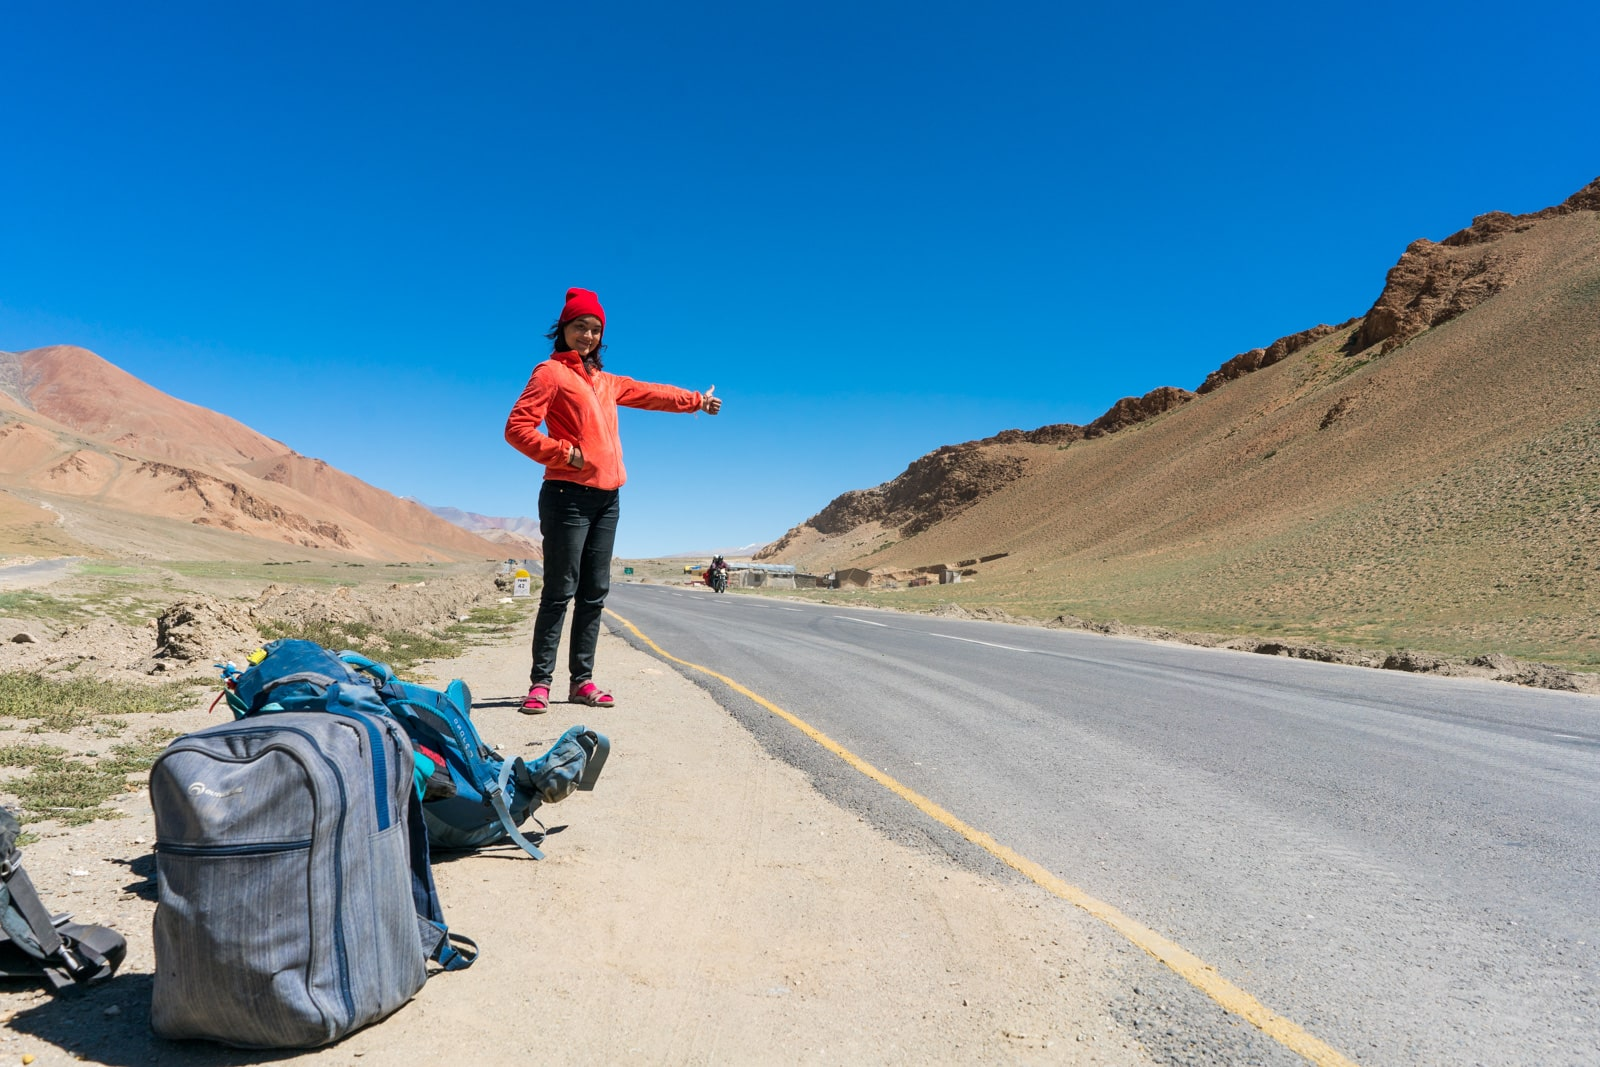 What is Lost With Purpose - Hitchhiking in Ladakh